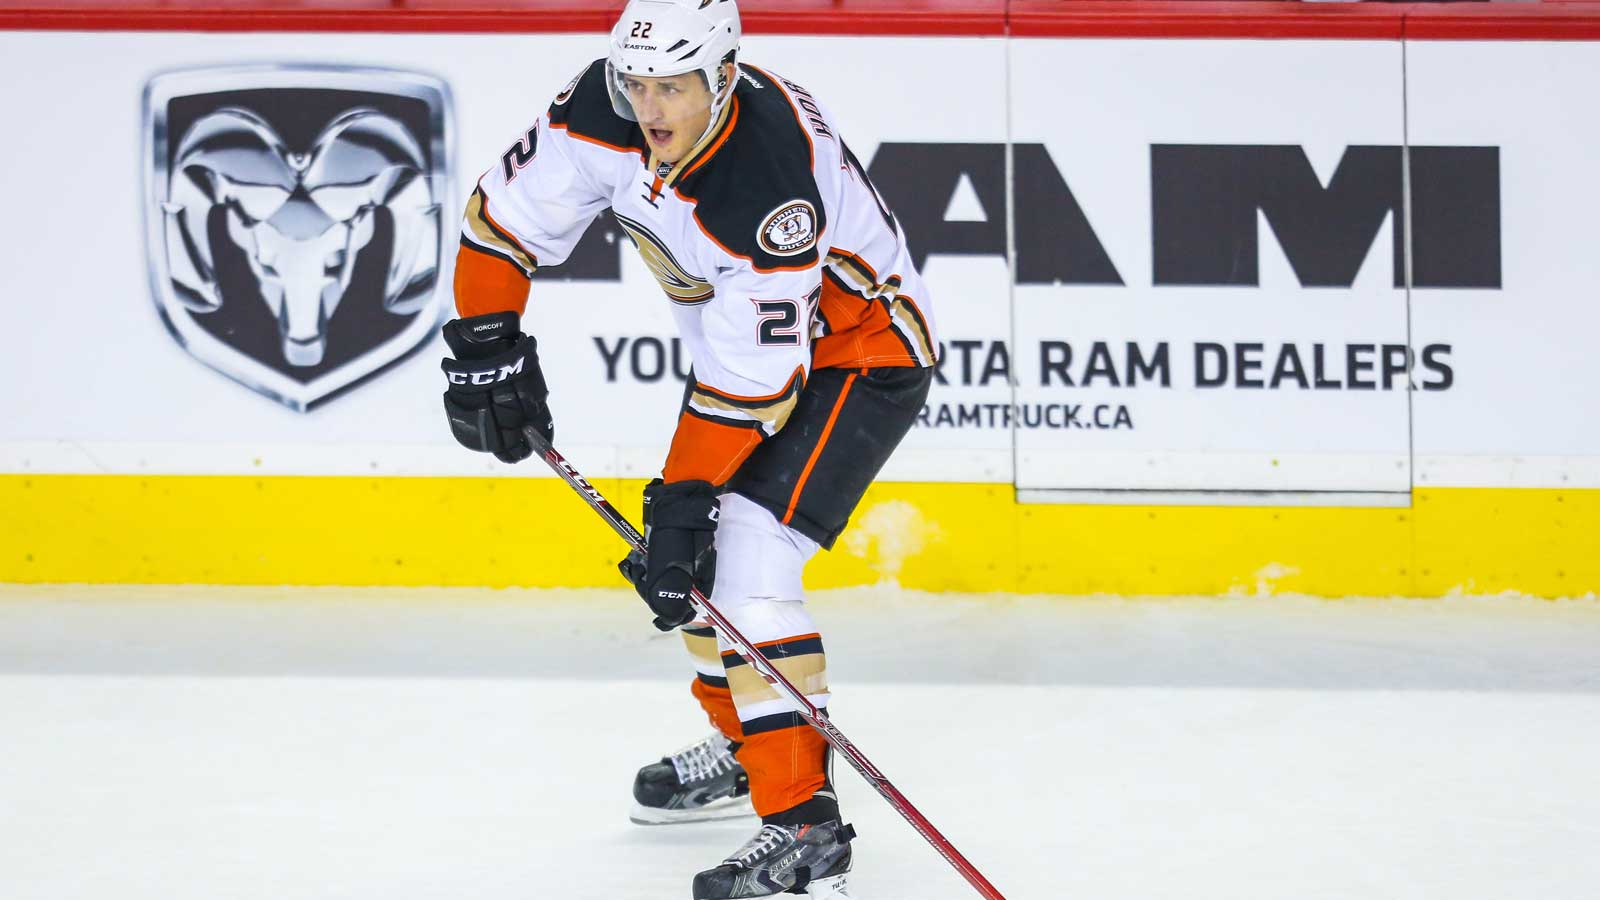 Ducks end Flames' streak with 1-0 victory